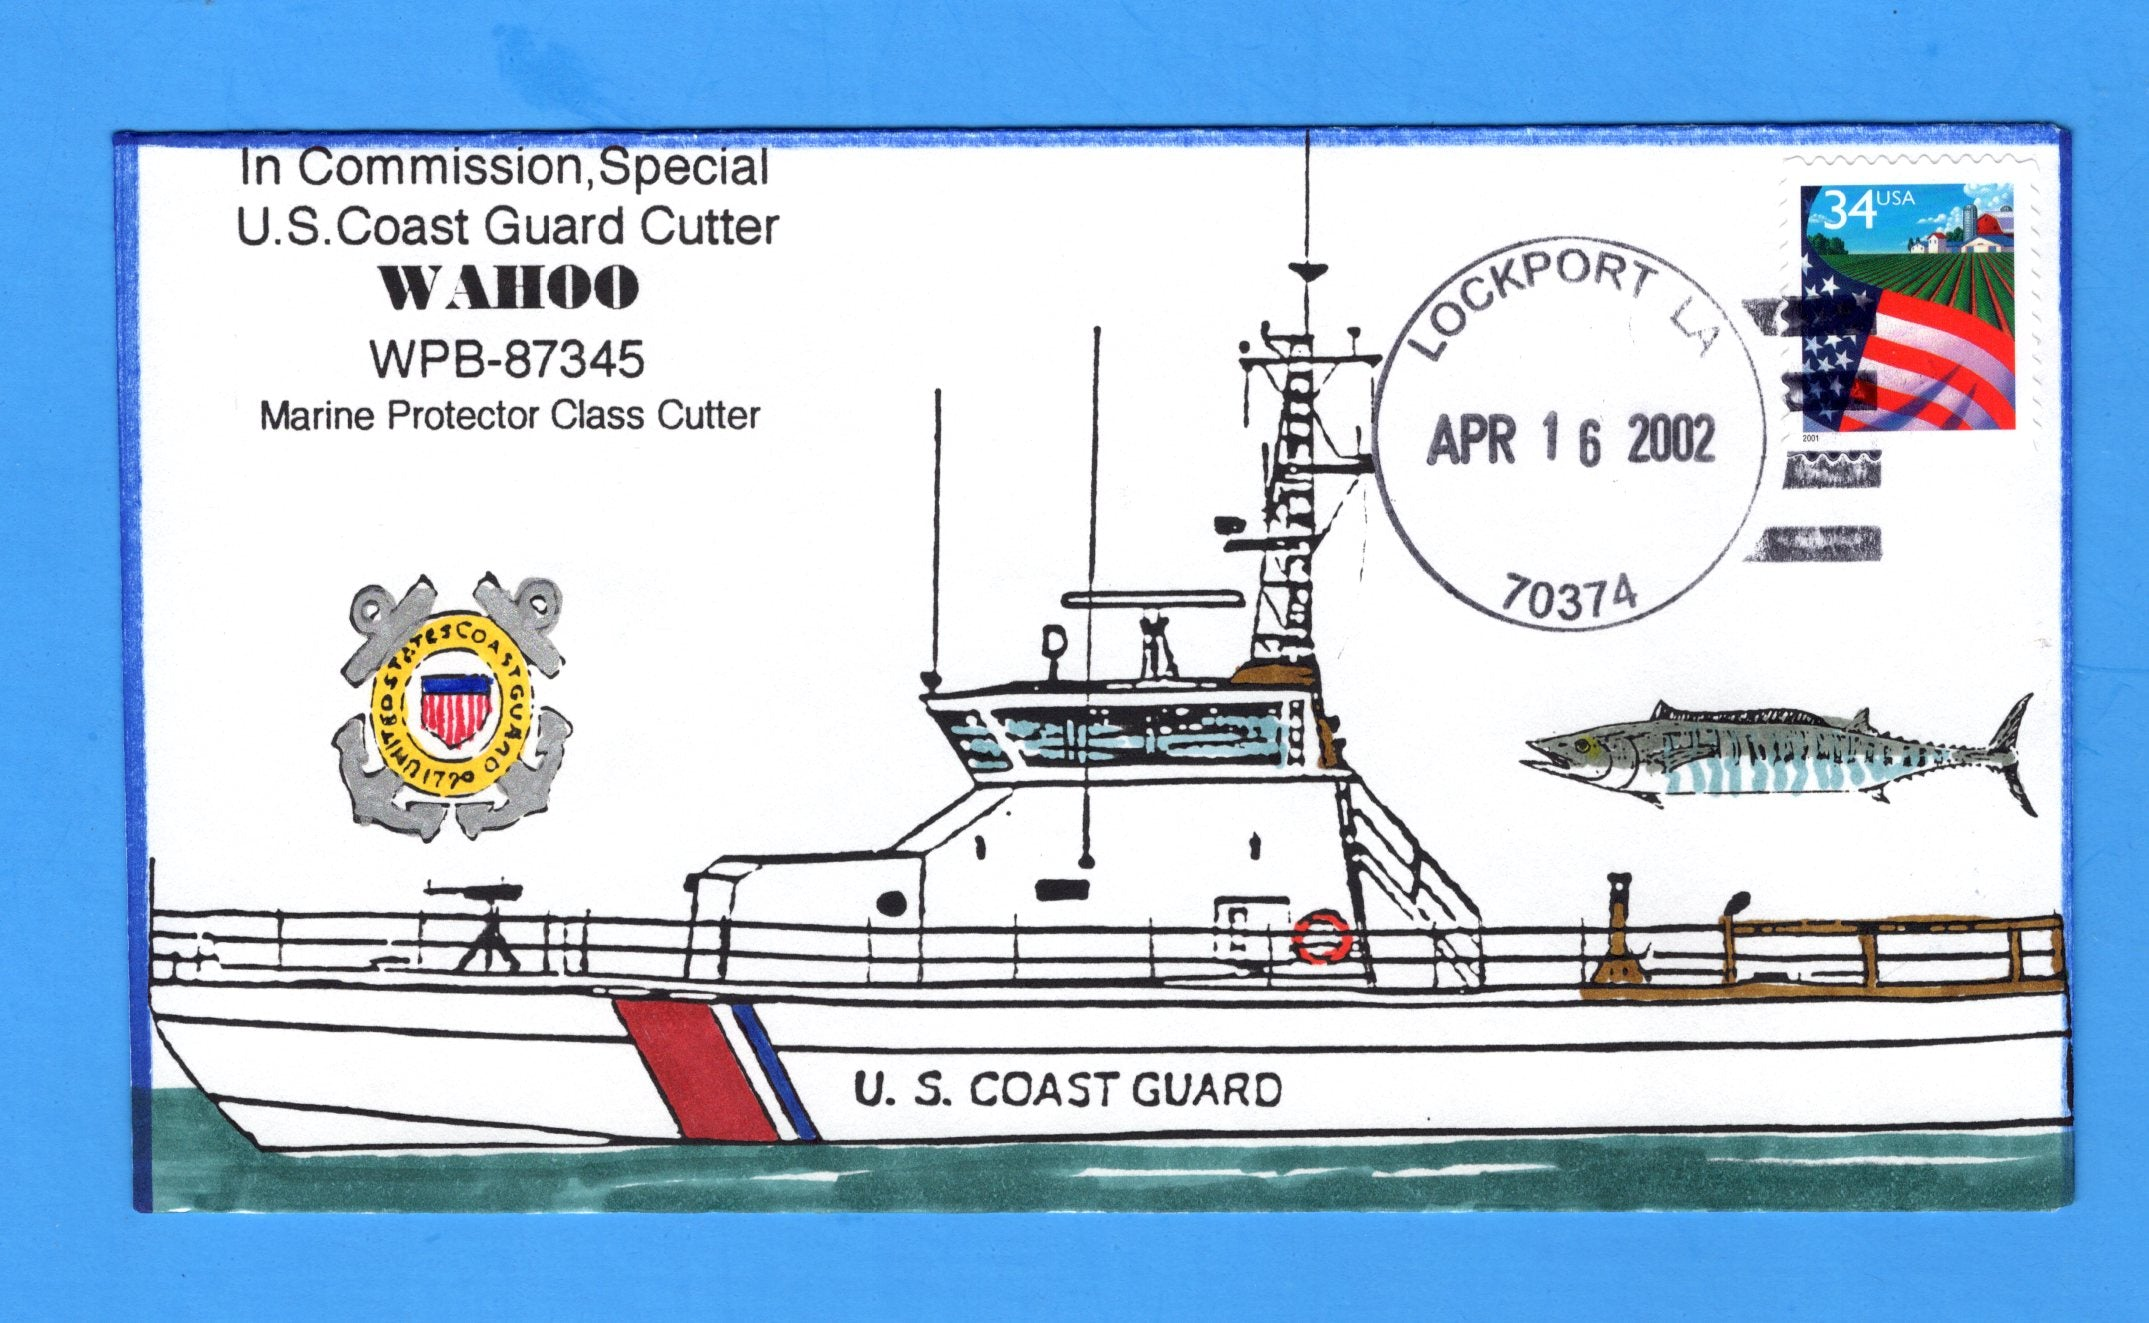 USCGC Wahoo WPB-87345 in Commission, Special April 16, 2002 - Hand Drawn and Colored Cachet by Bill Everett